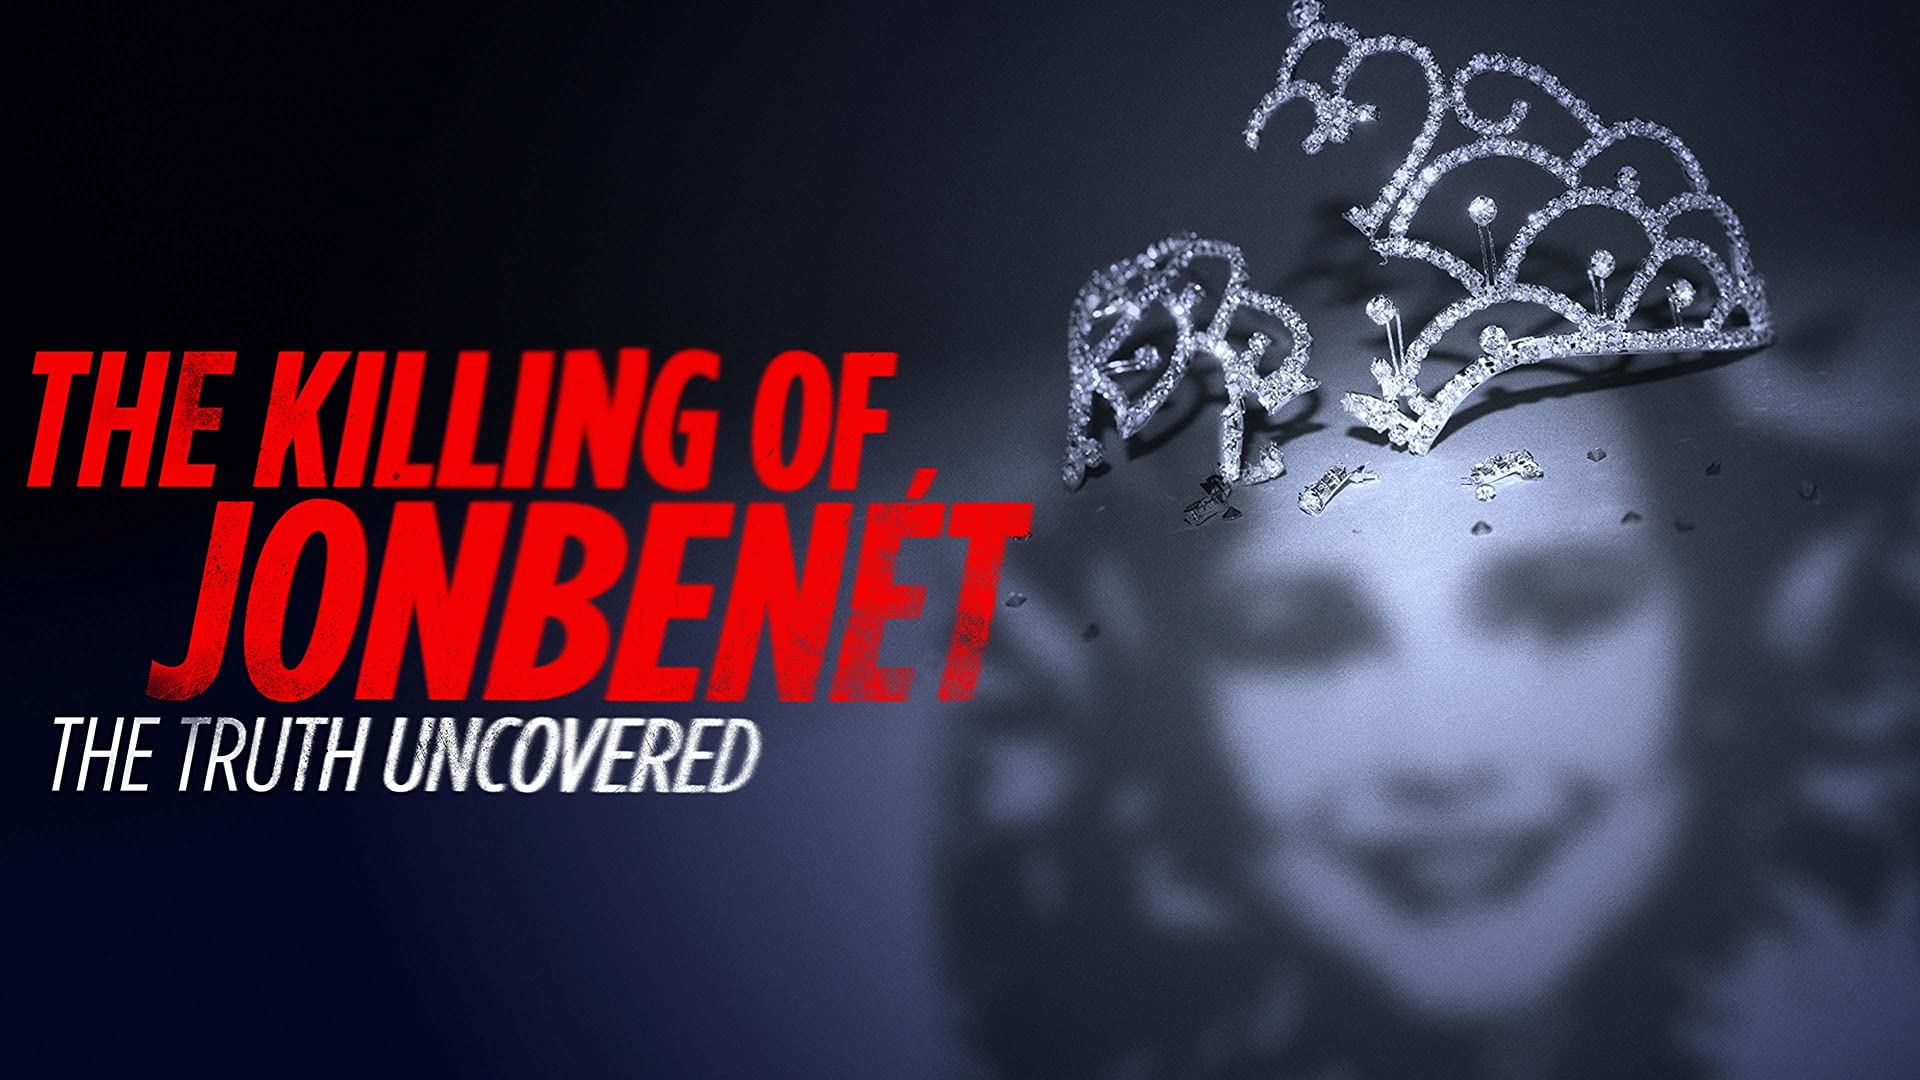 Killing of JonBenet Truth Uncovered HD